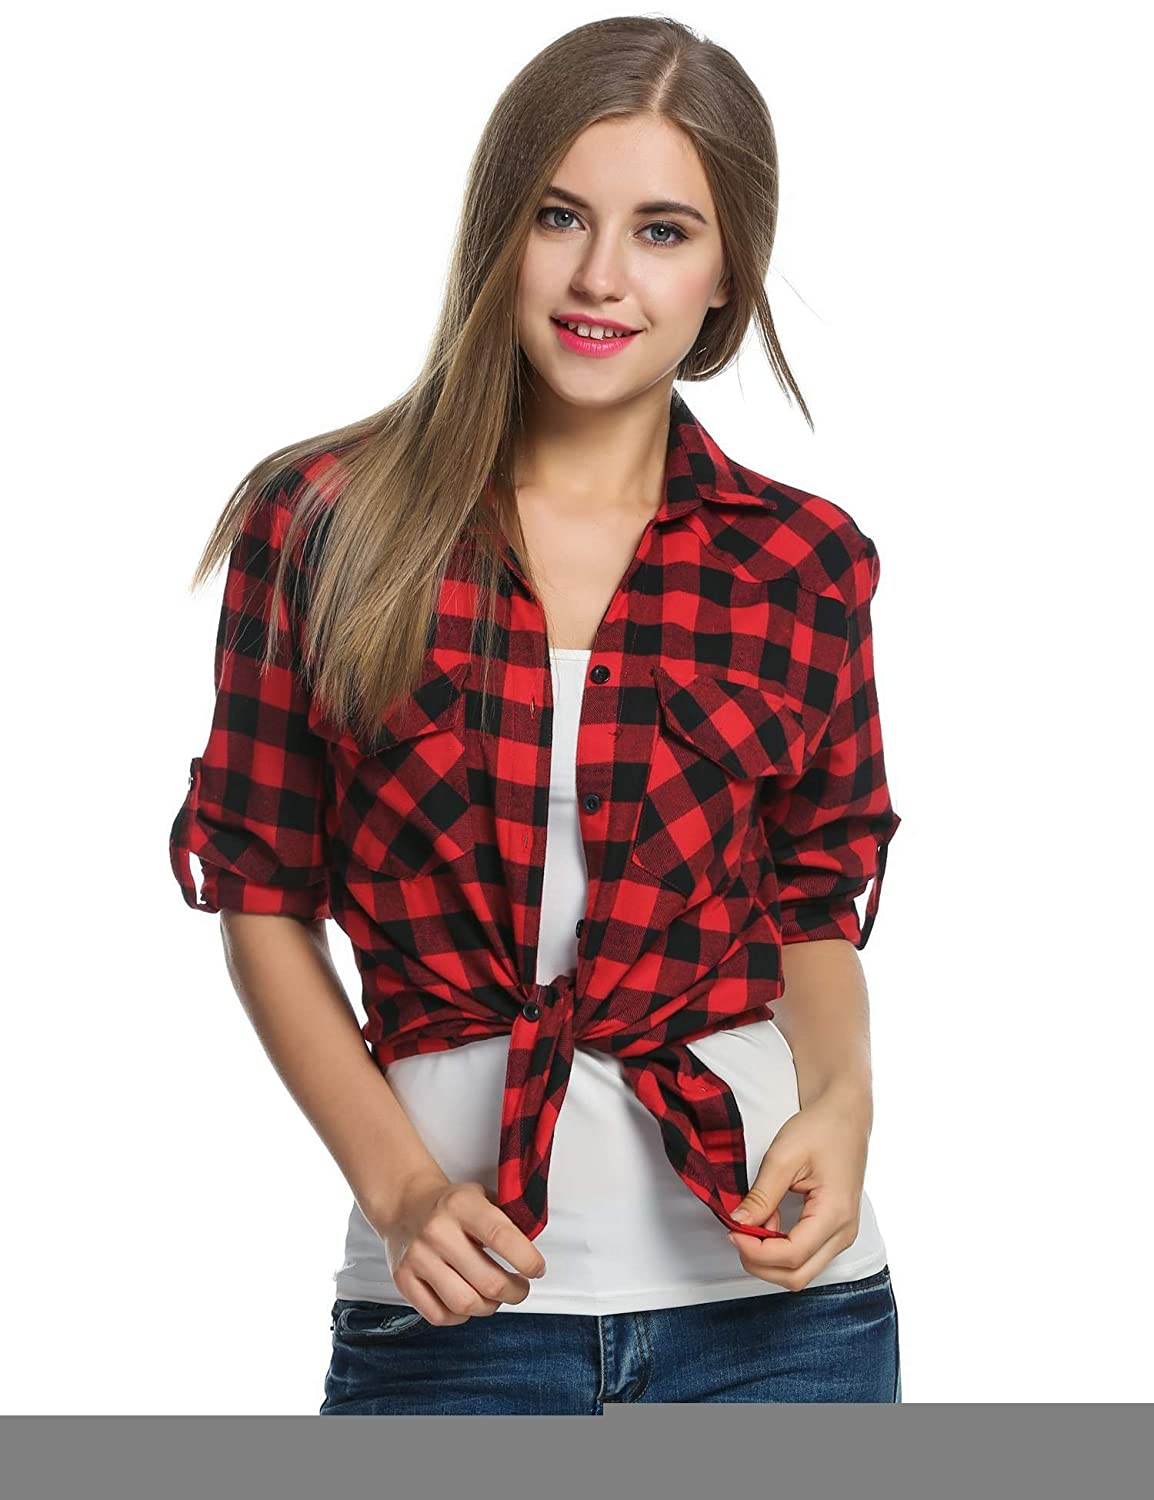 4d62f07d eshion red Checked Shirt Womens Black and Yellow Plaid Shirt Button-Down  Shirts at Amazon Women's Clothing store: